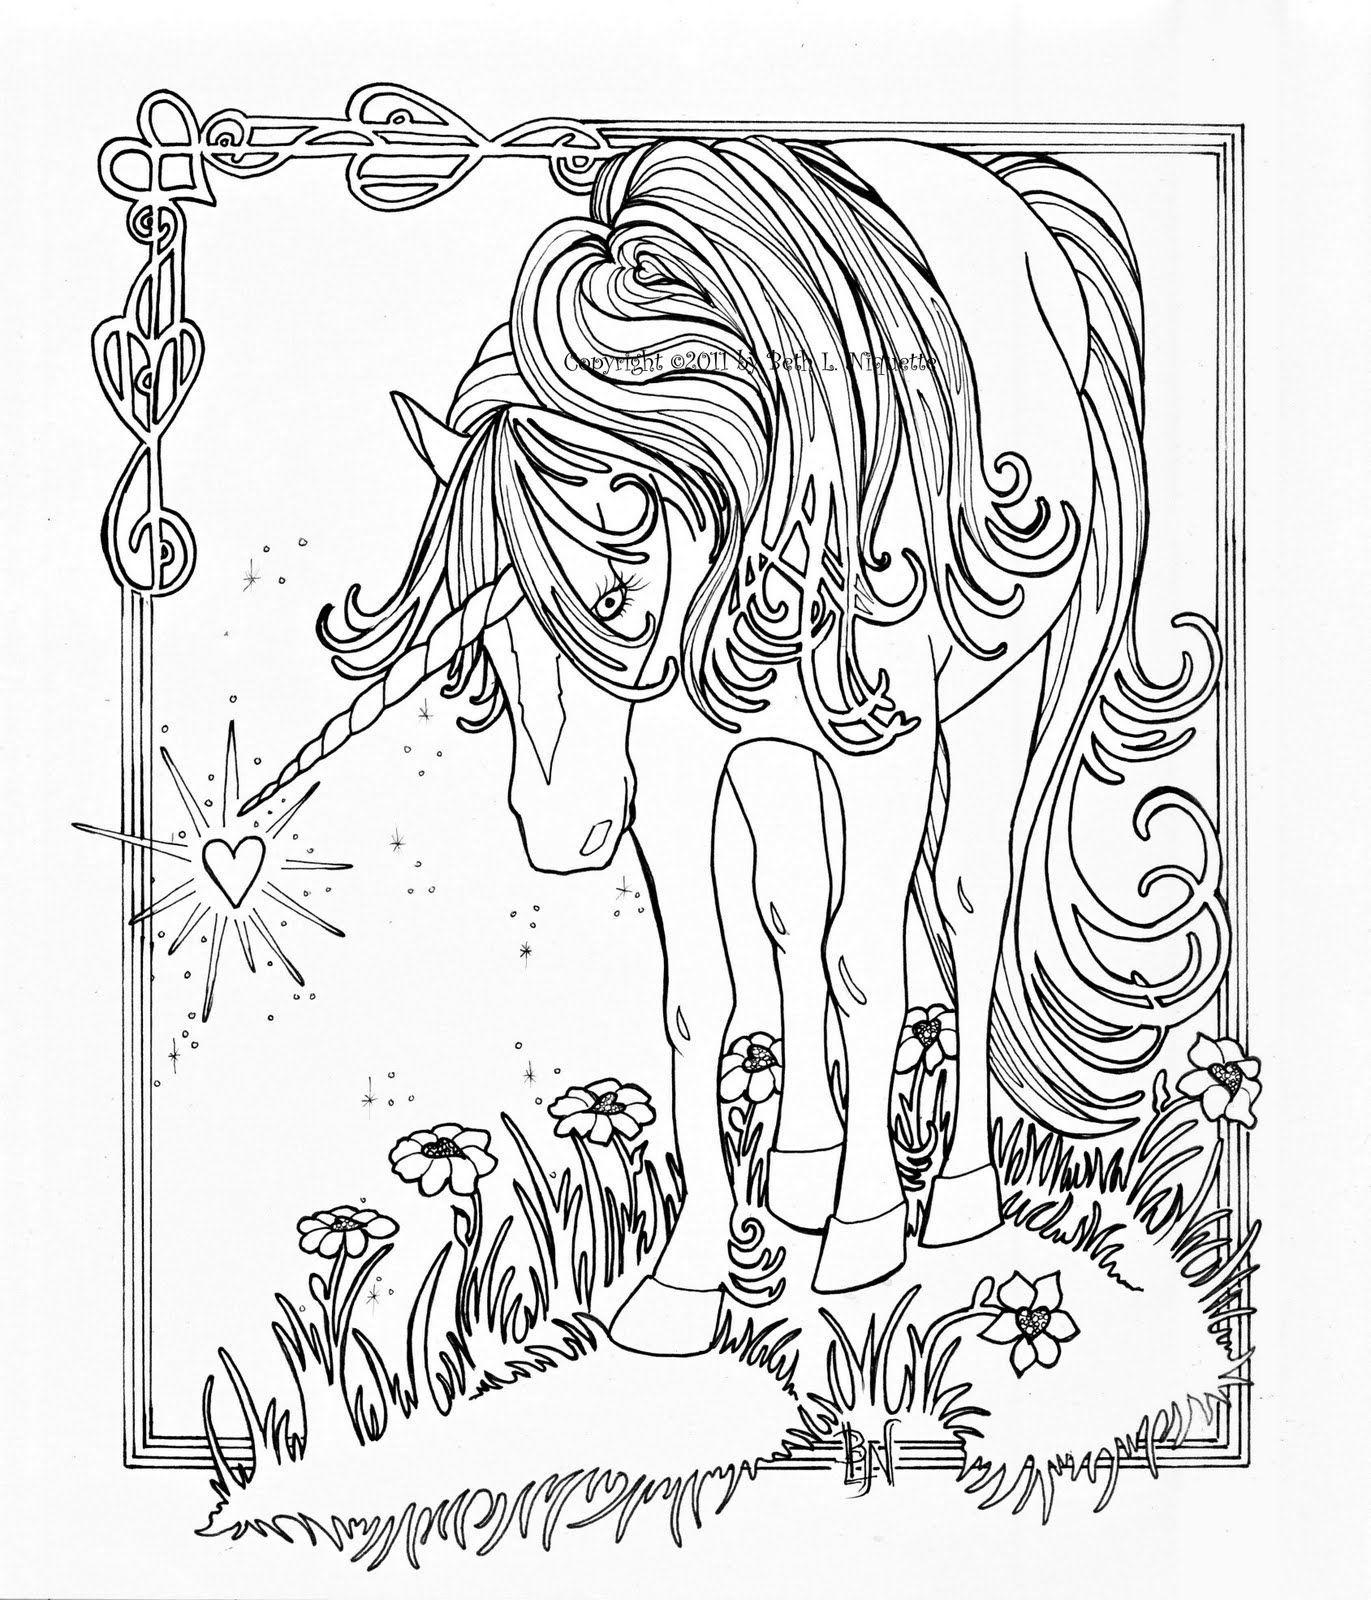 Majestic Unicorn Coloring Page Free Printable Unicorn Coloring Pages Horse Coloring Pages Animal Coloring Pages